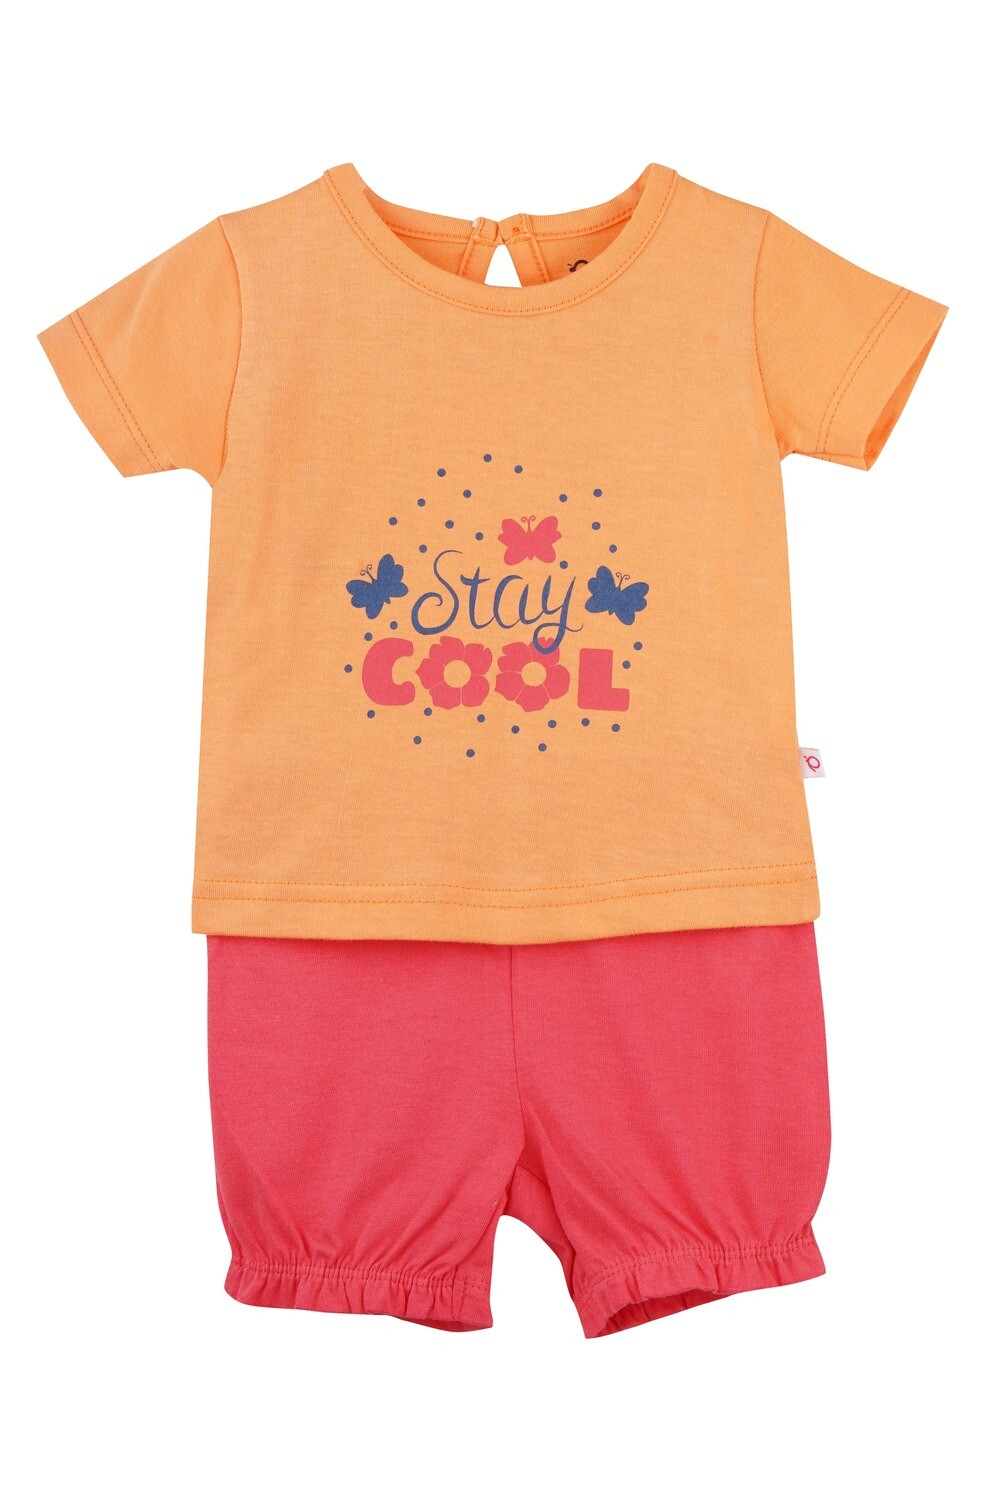 STRAWBERRY Cantaloupe Half sleeve Top and Panties for Baby Girls